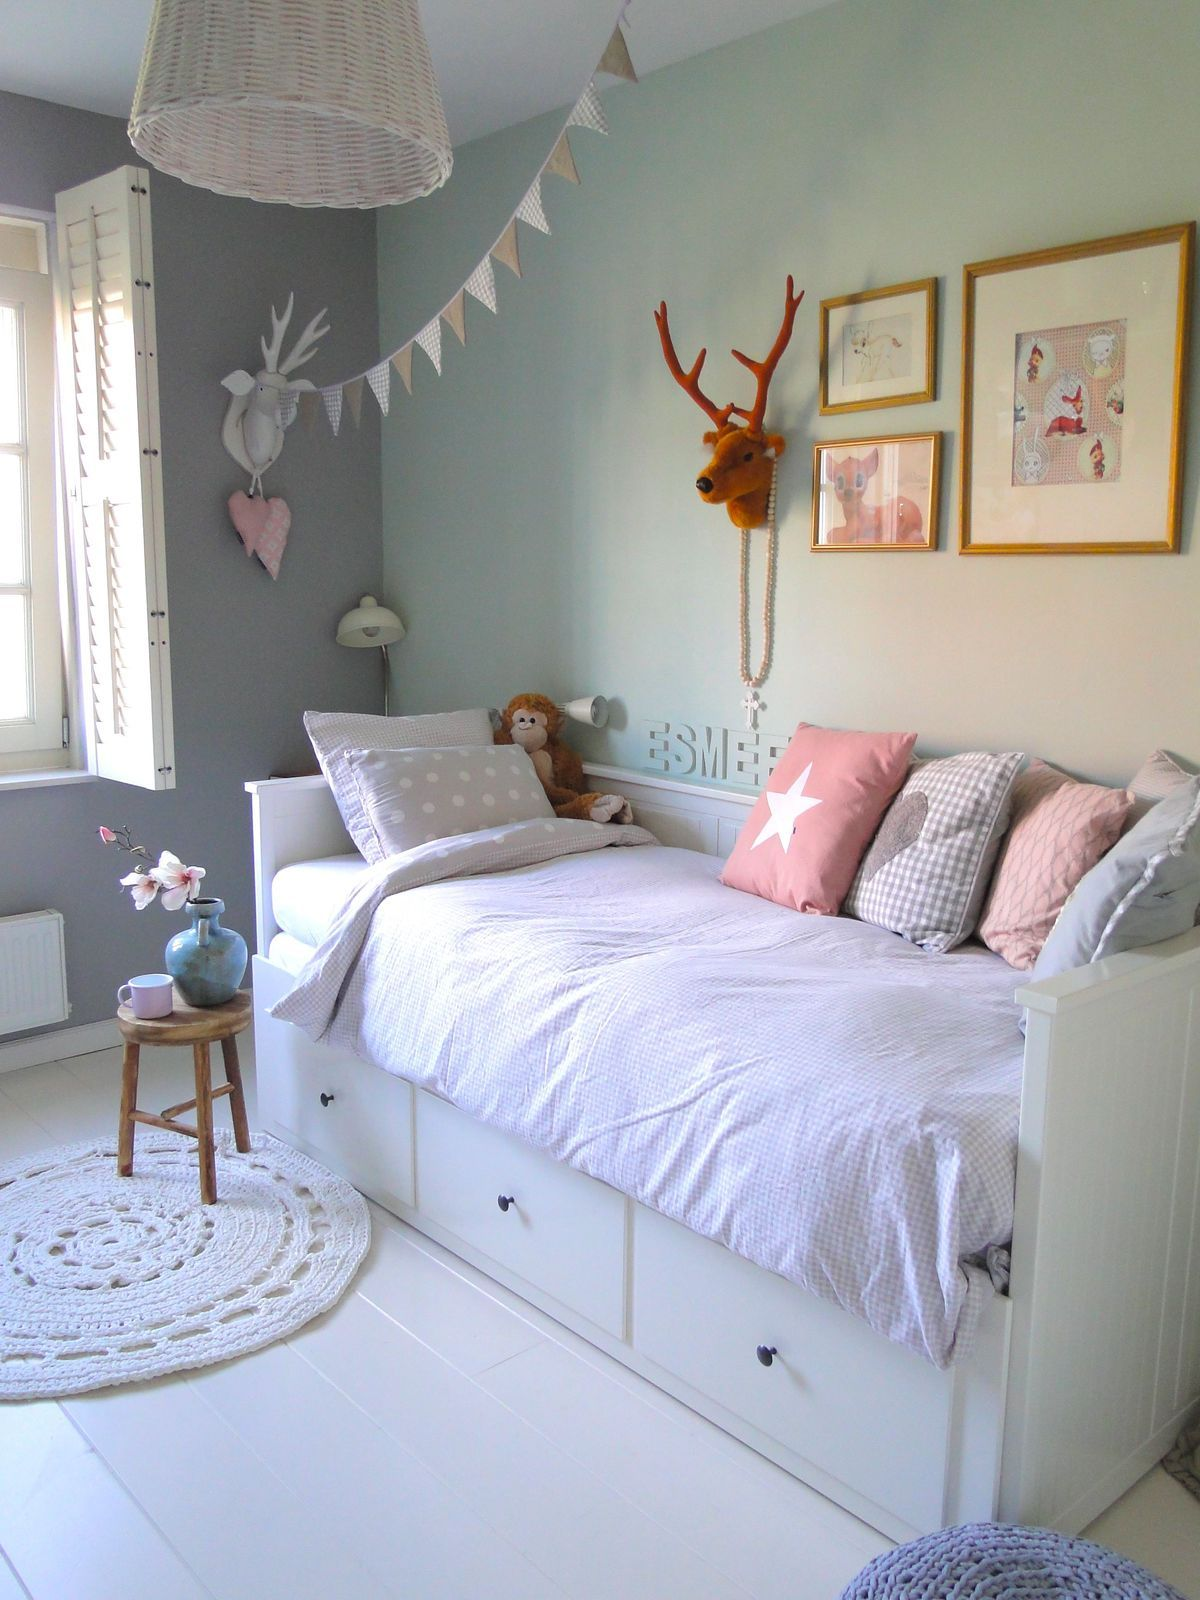 Pin By Jill S On Kids Rooms In 2019 Girl Room Teenage